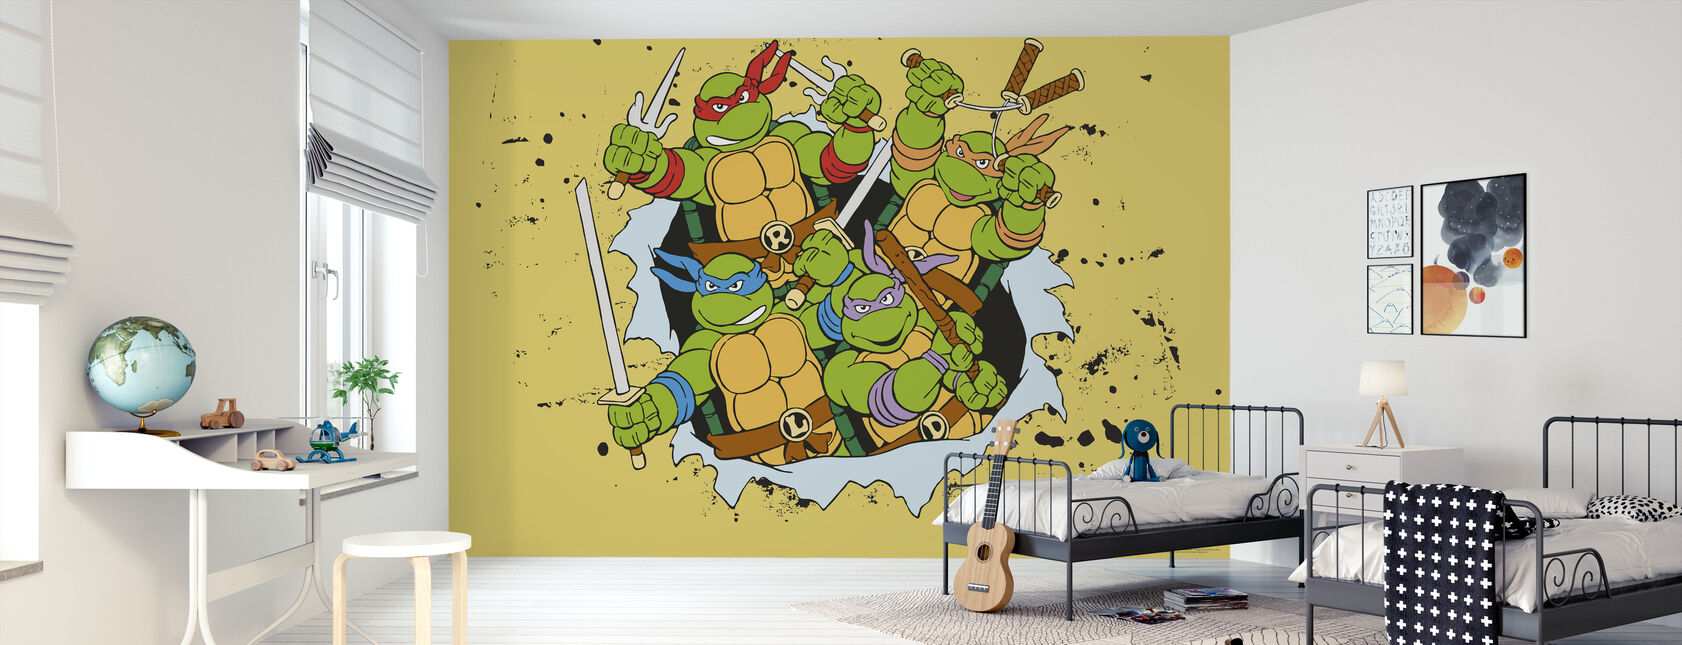 Original Ninjas Yellow - Wallpaper - Kids Room